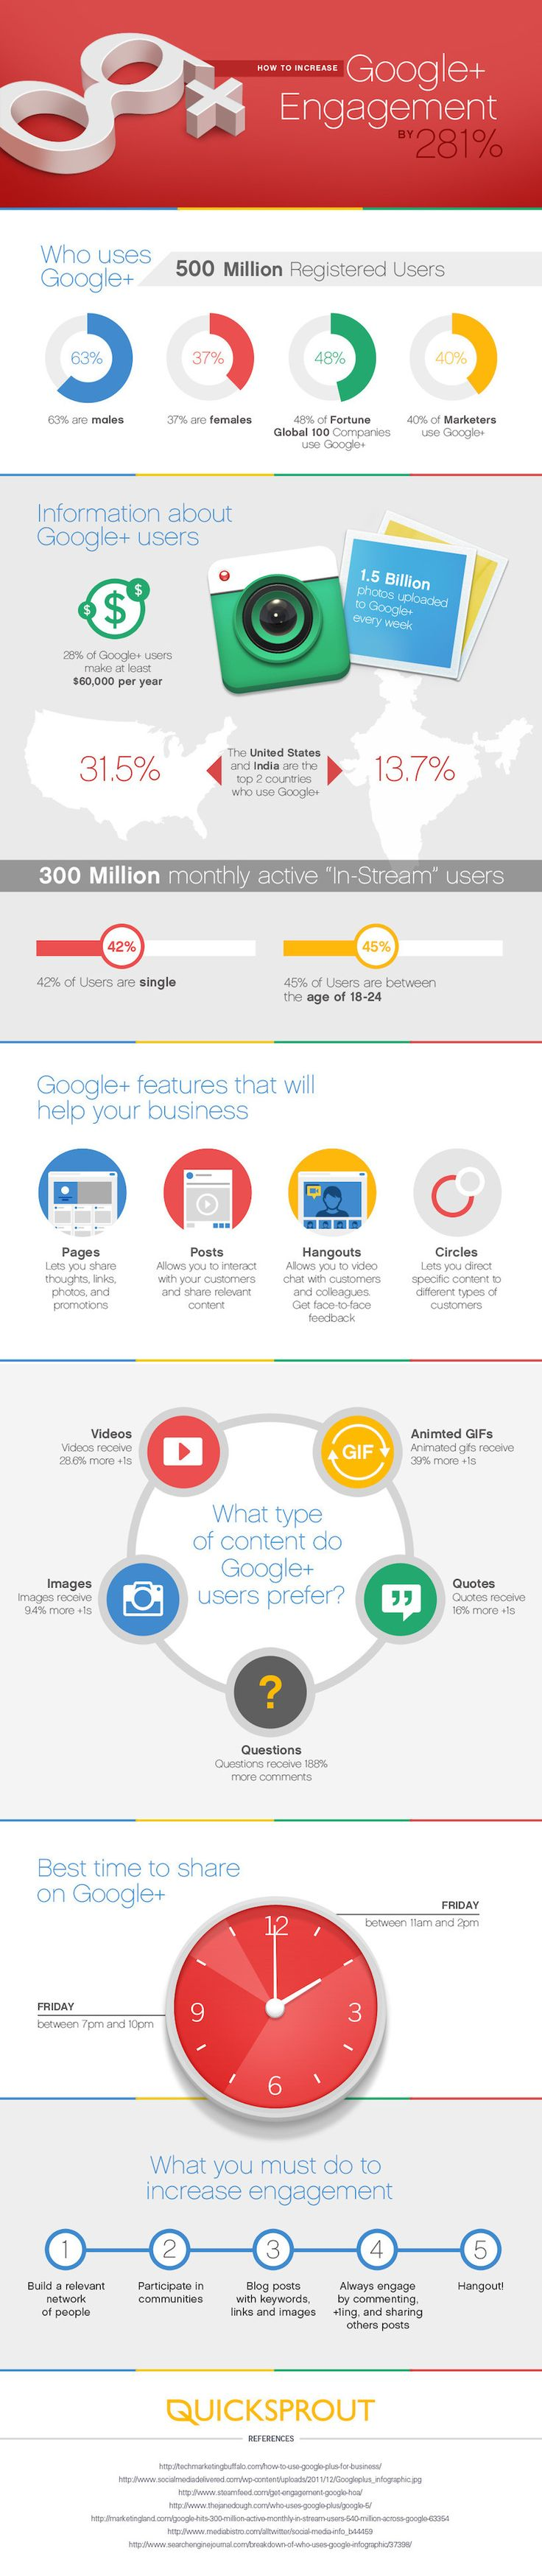 How to Increase Your #Google+ Engagement by 281% #Infographic #socialmedia